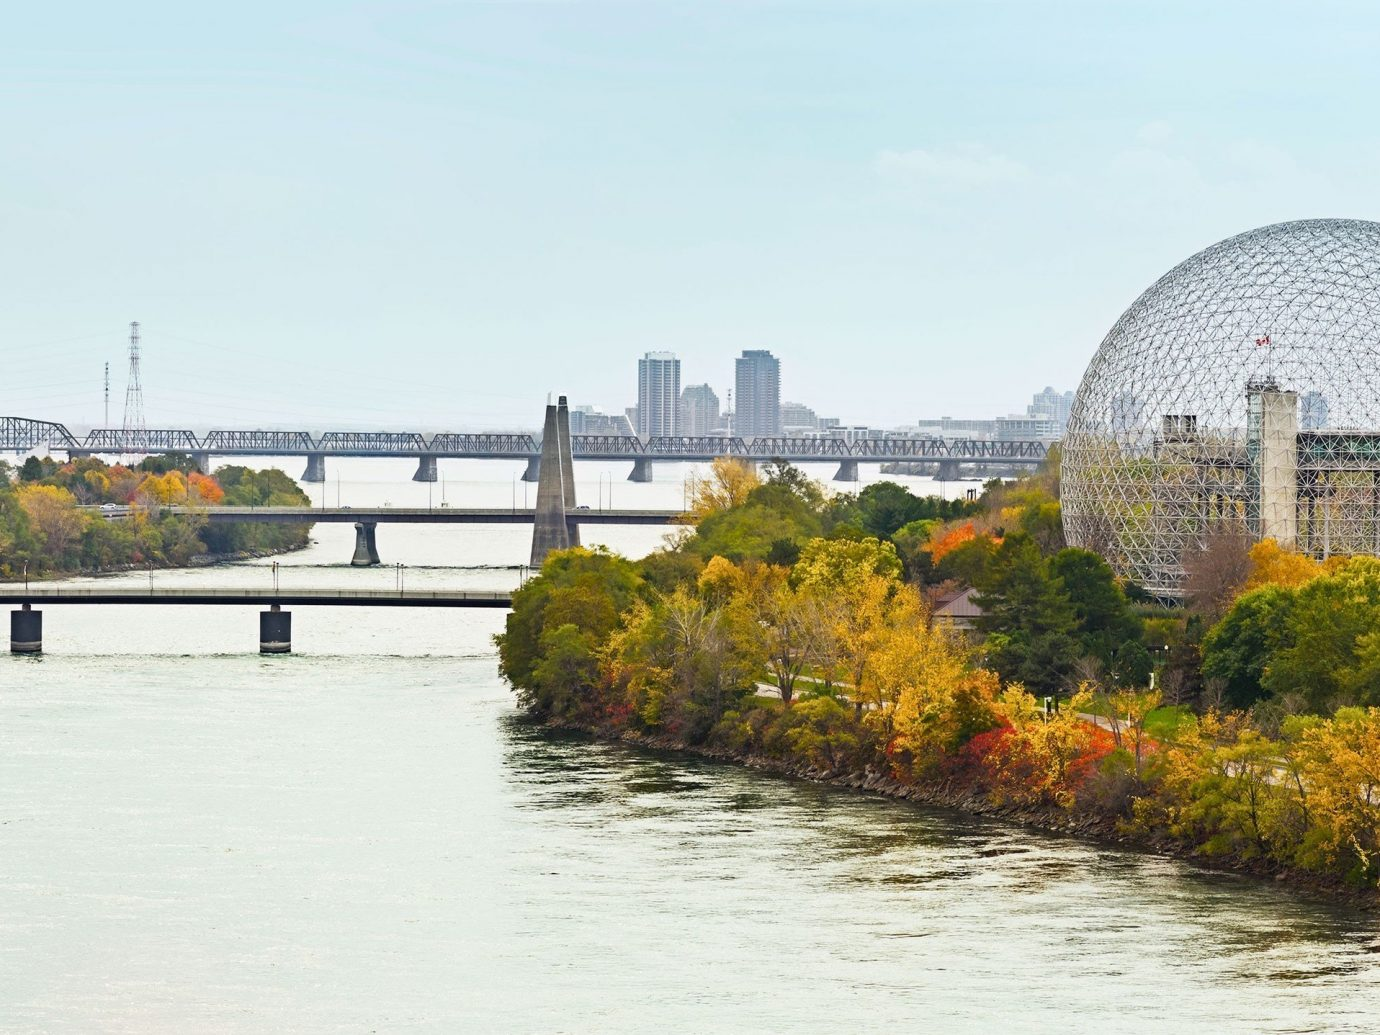 Trip Ideas sky outdoor water River landmark bridge cityscape tourism waterway reflection skyline traveling day